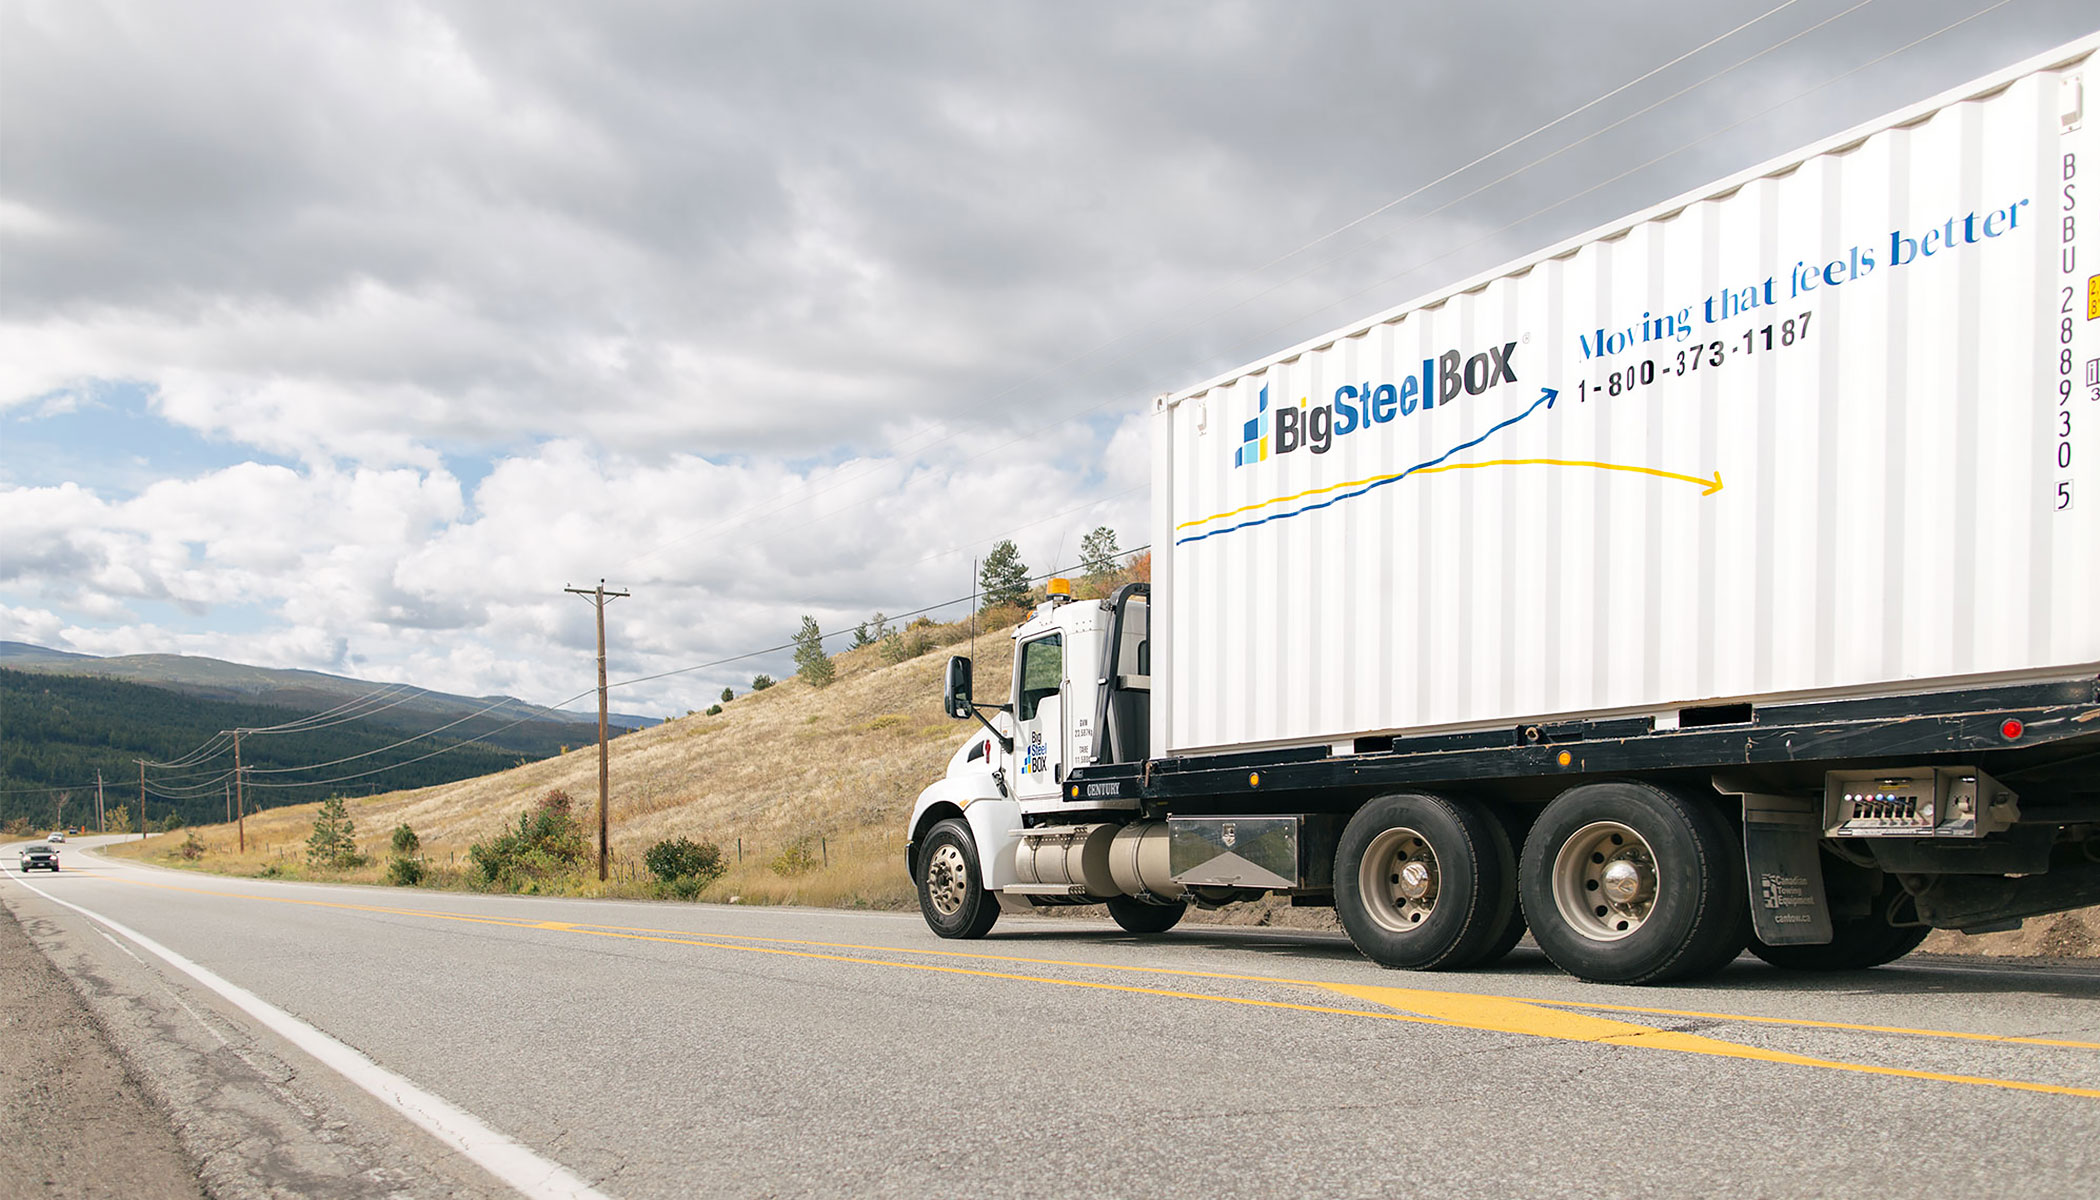 BigSteelBox Moving Truck - COVID-19 Safety